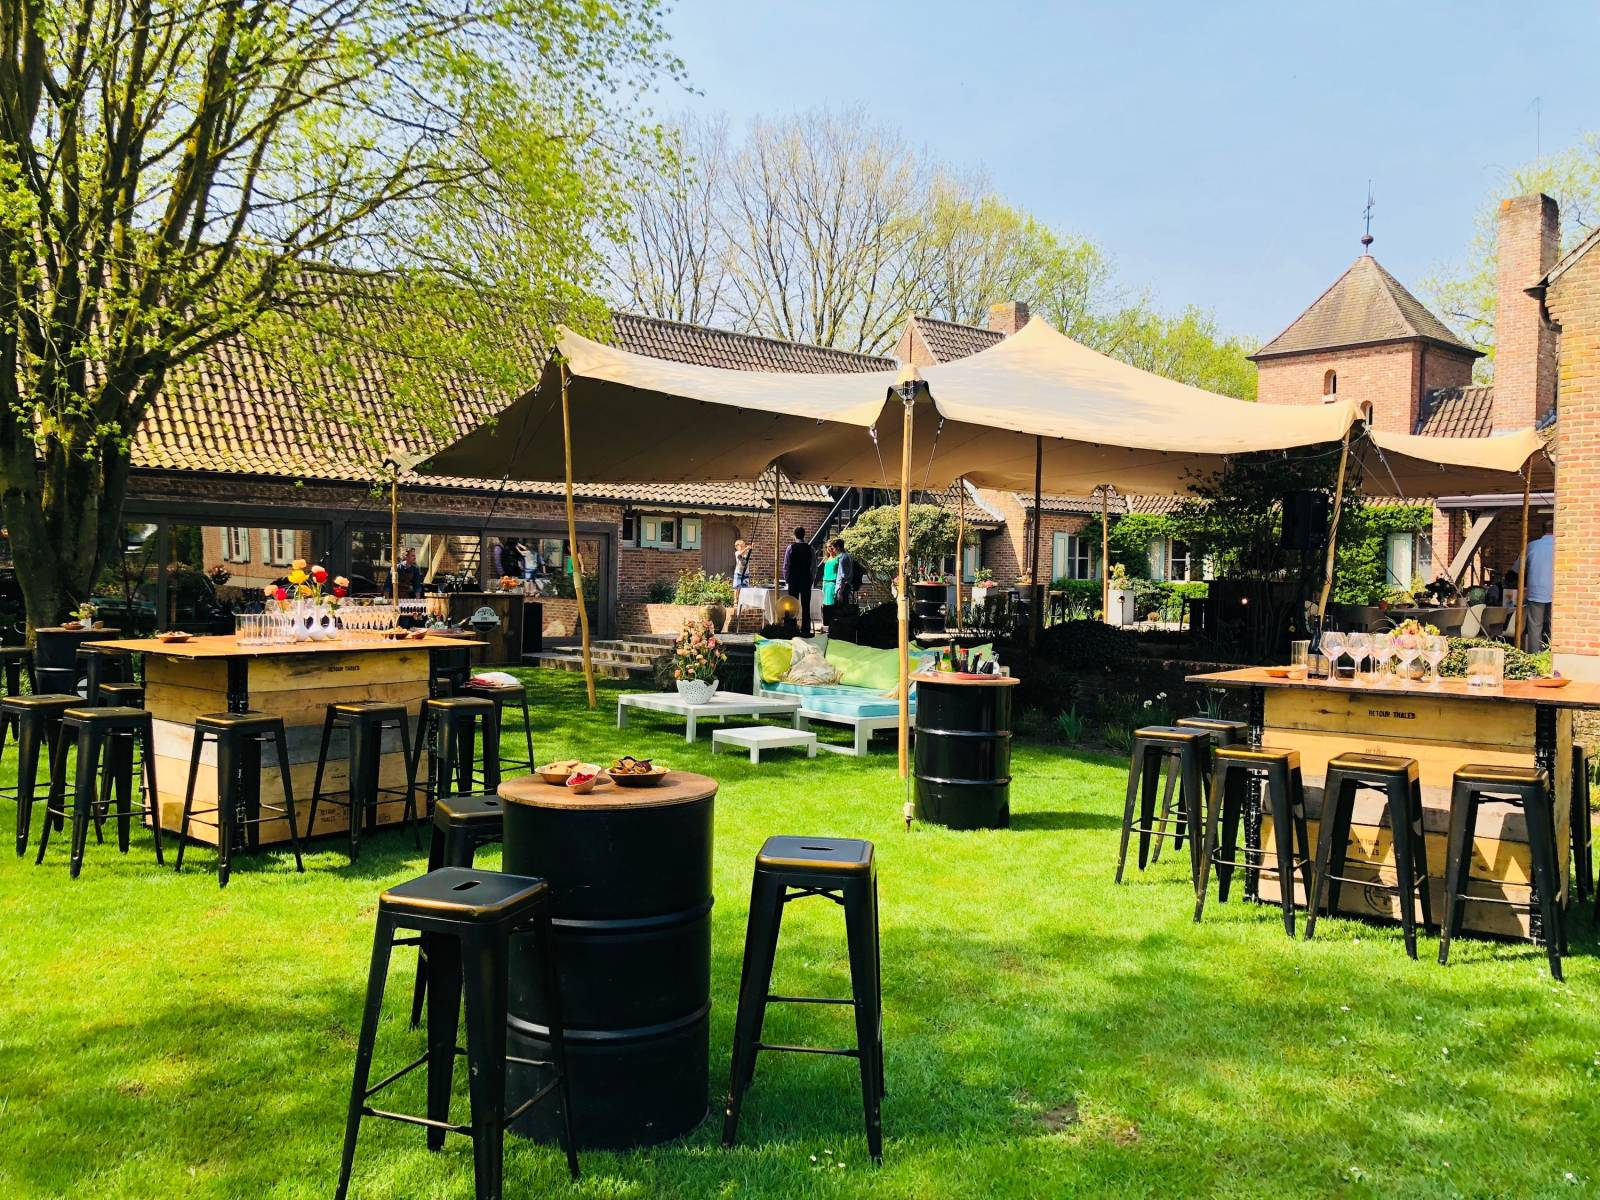 The Street Food Company - Foodtruck - Huwelijk - Event - Feest - House of Weddings & House of Events - 15